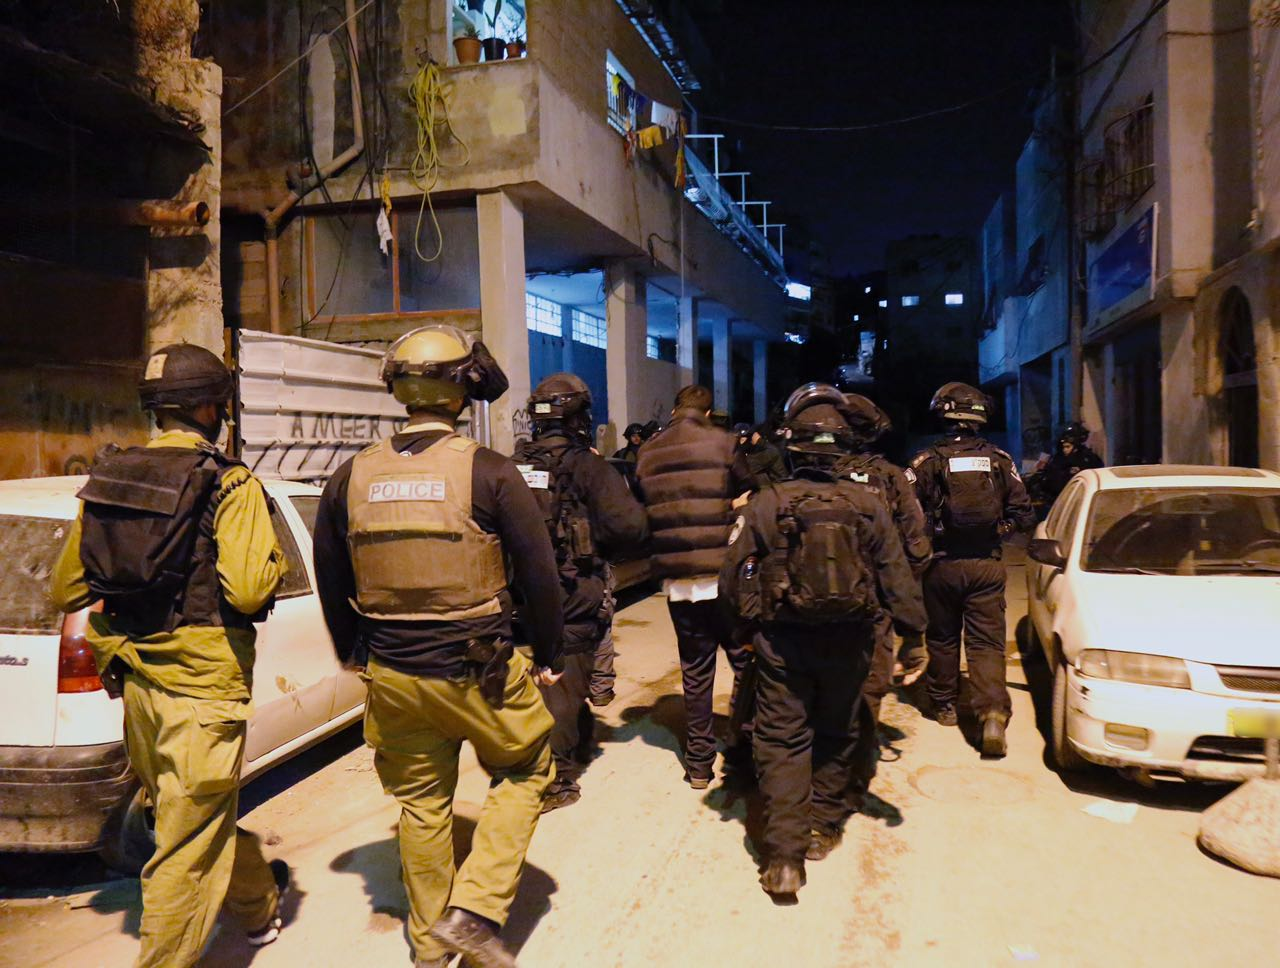 Overnight Police Raid Shuafat Refugee Camp